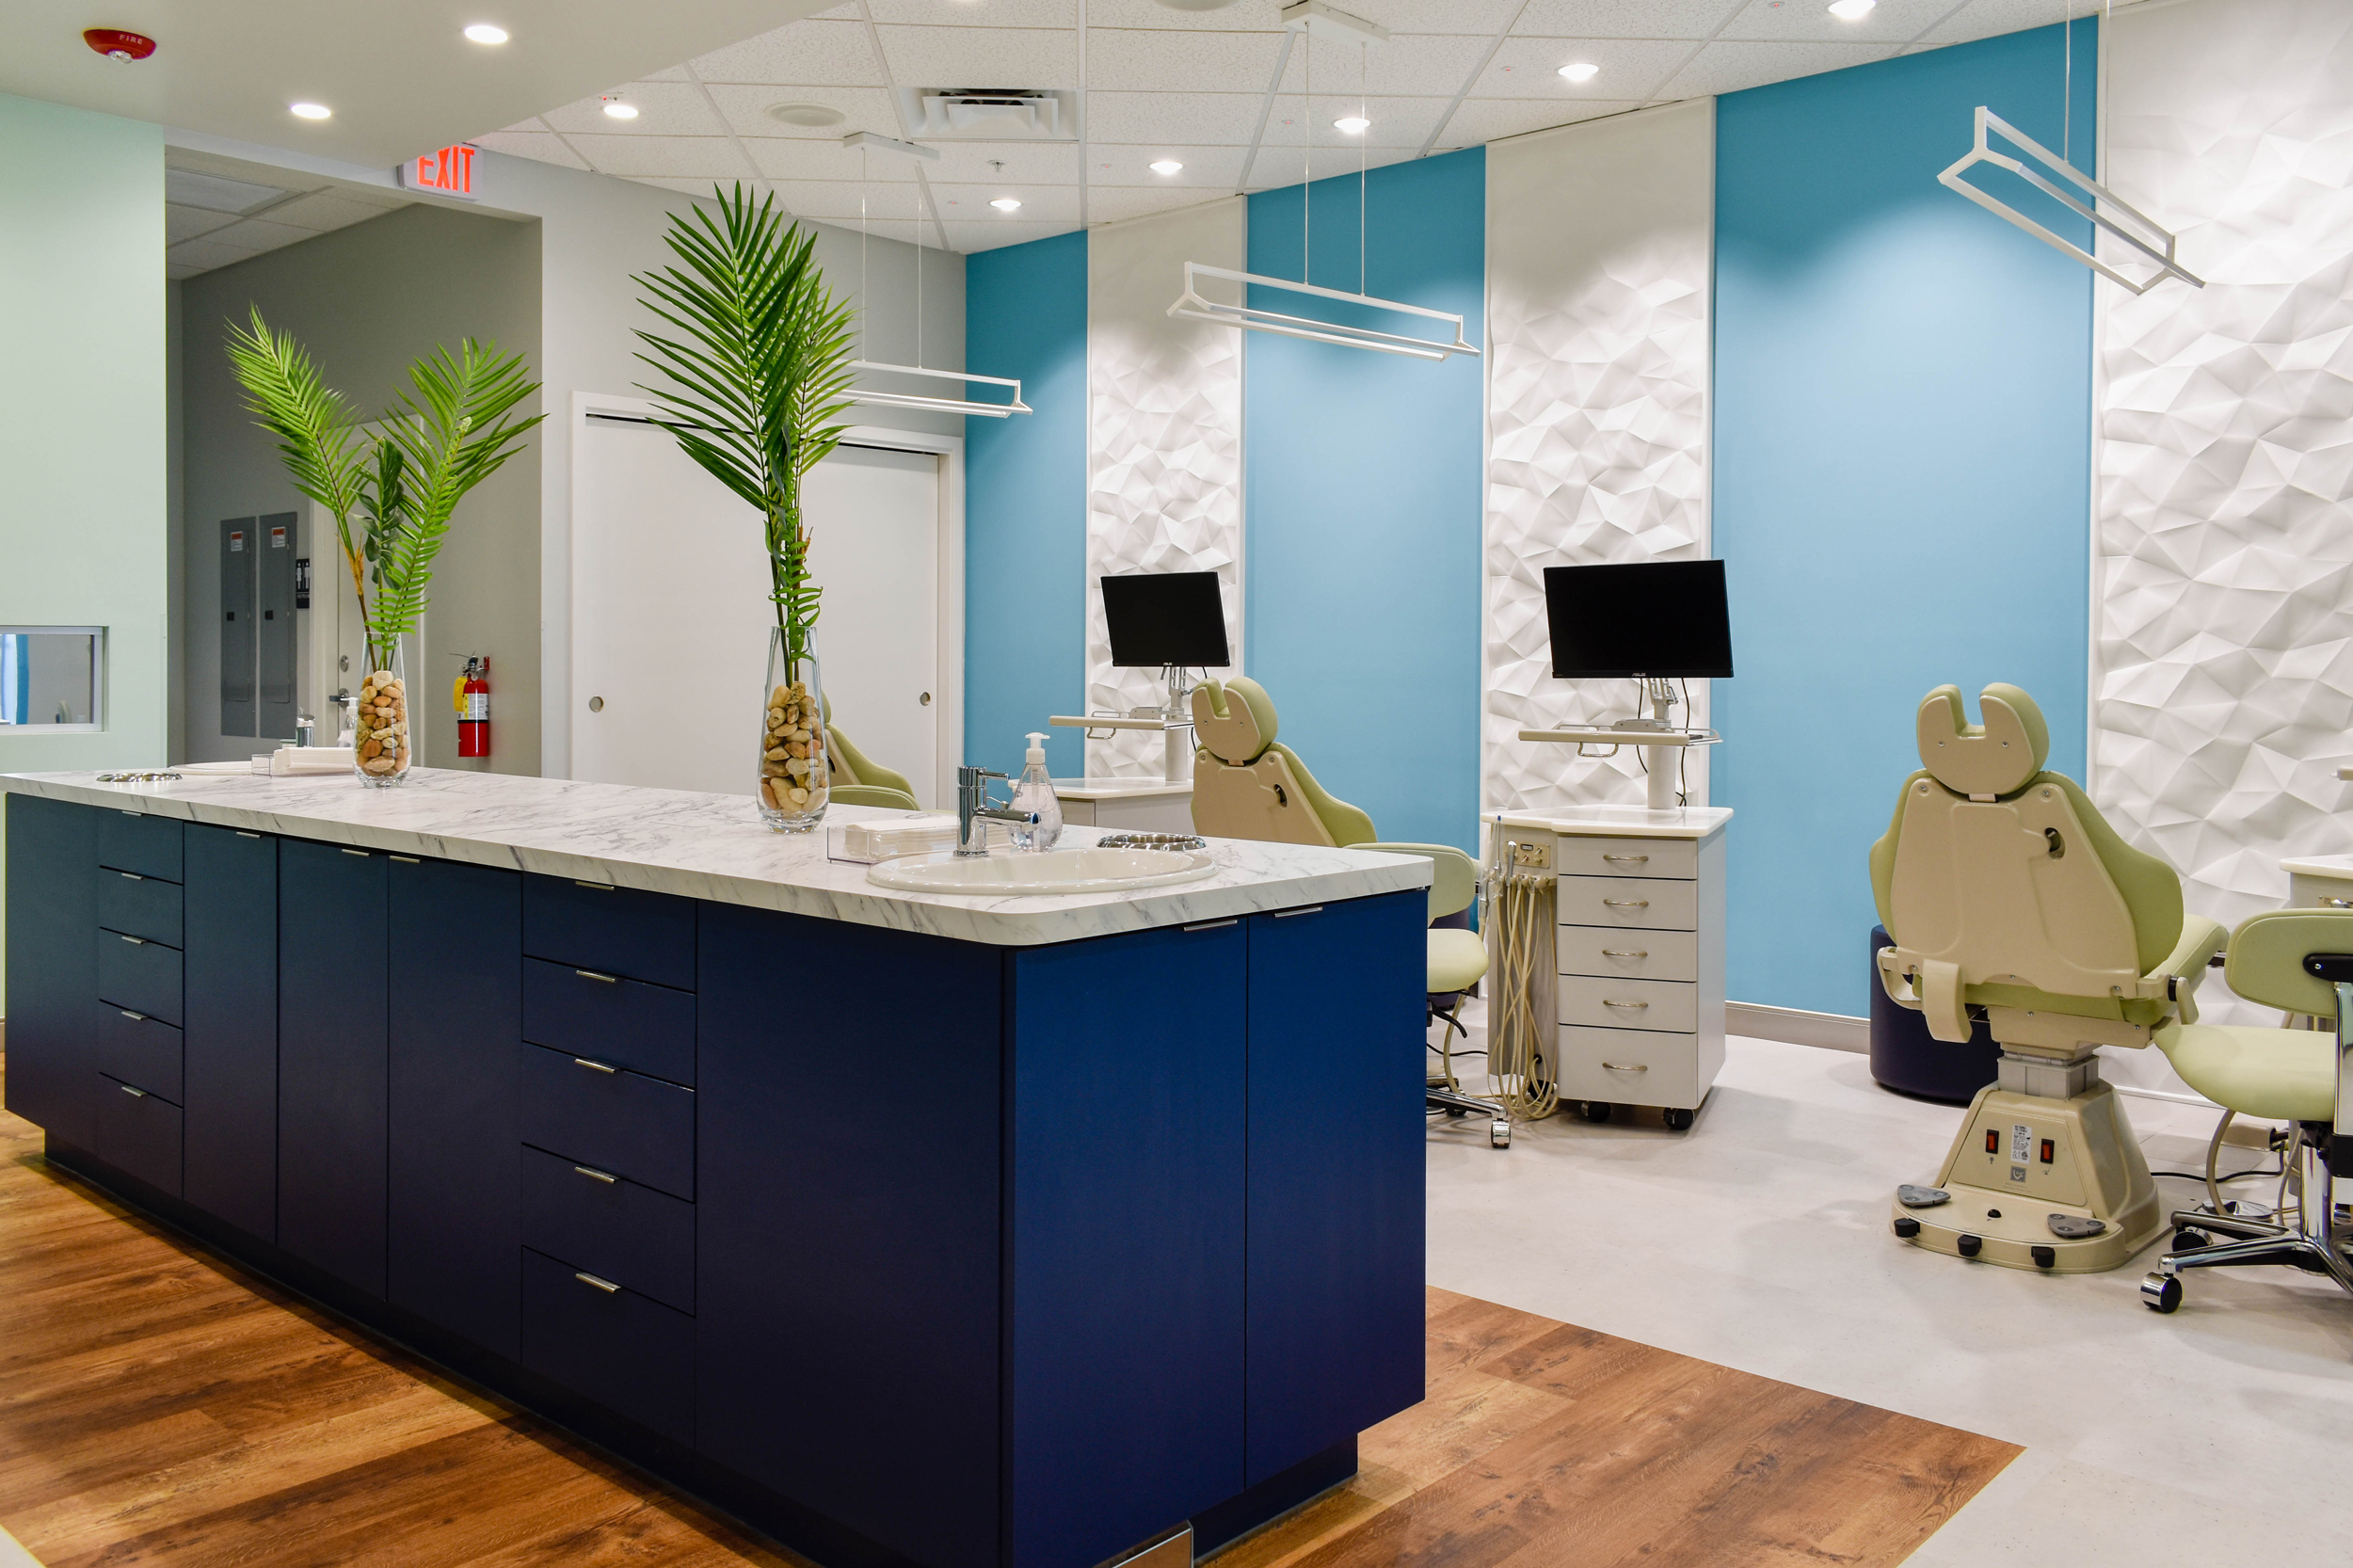 Origami Orthodontics treatment room for Invisalign (clear aligners) and traditional or clear braces treatment.